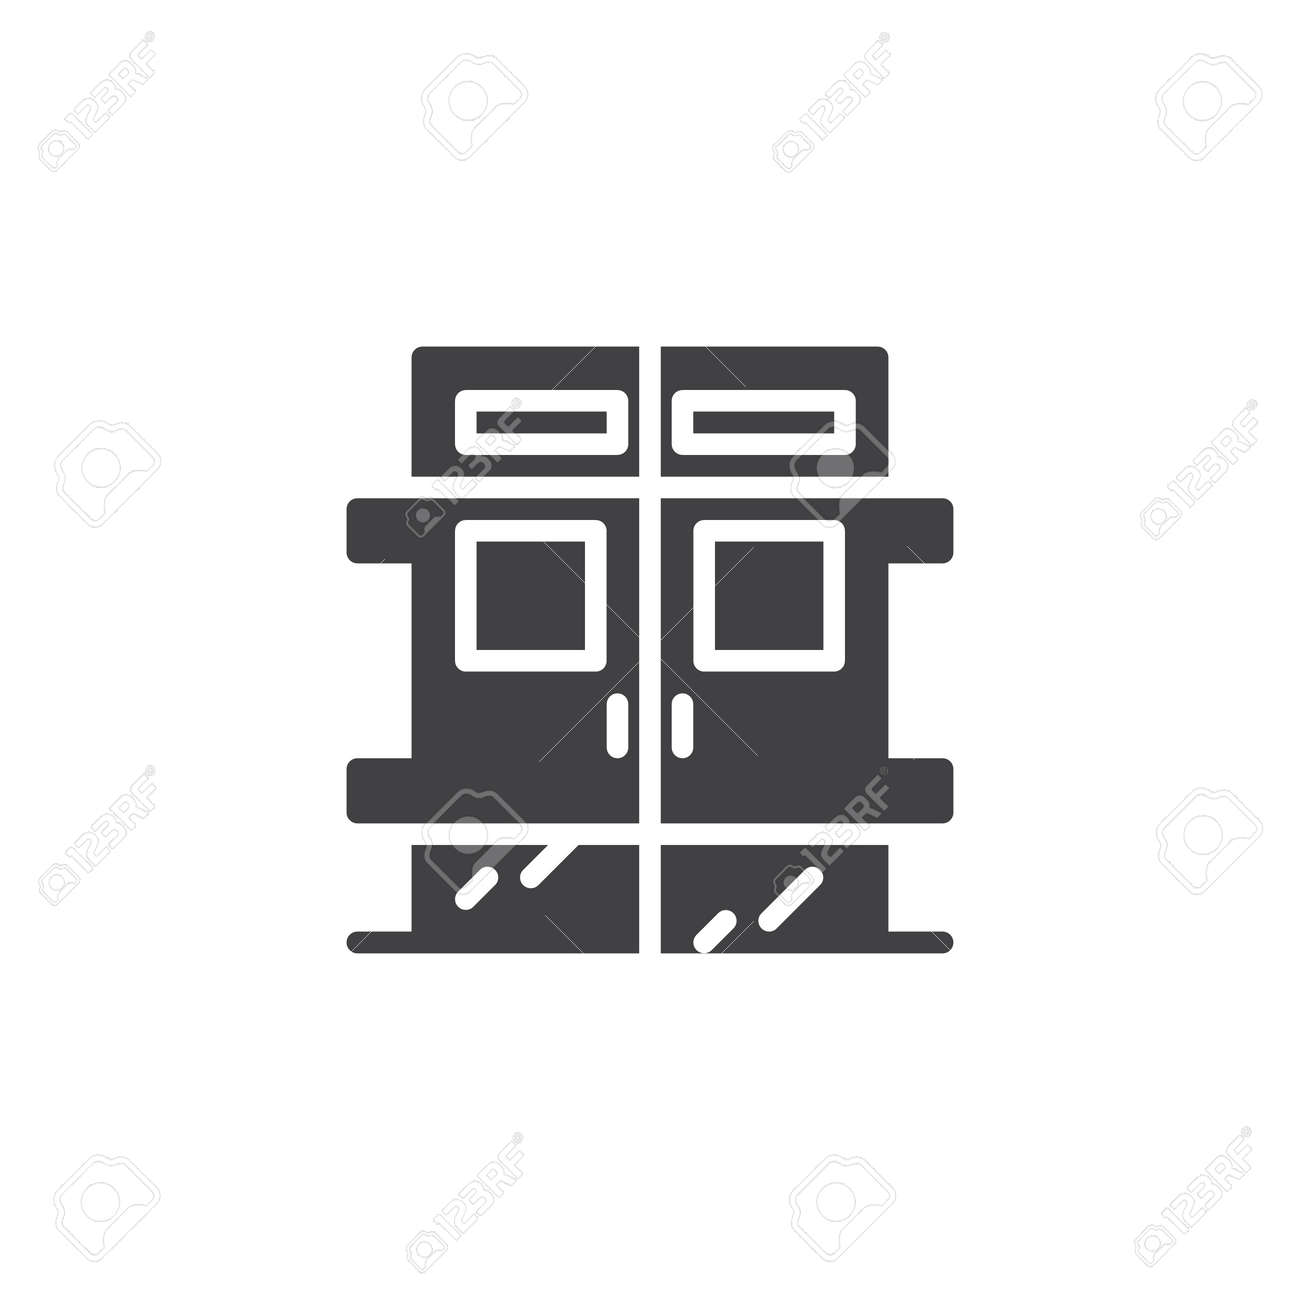 Hospital door vector icon  filled flat sign for mobile concept